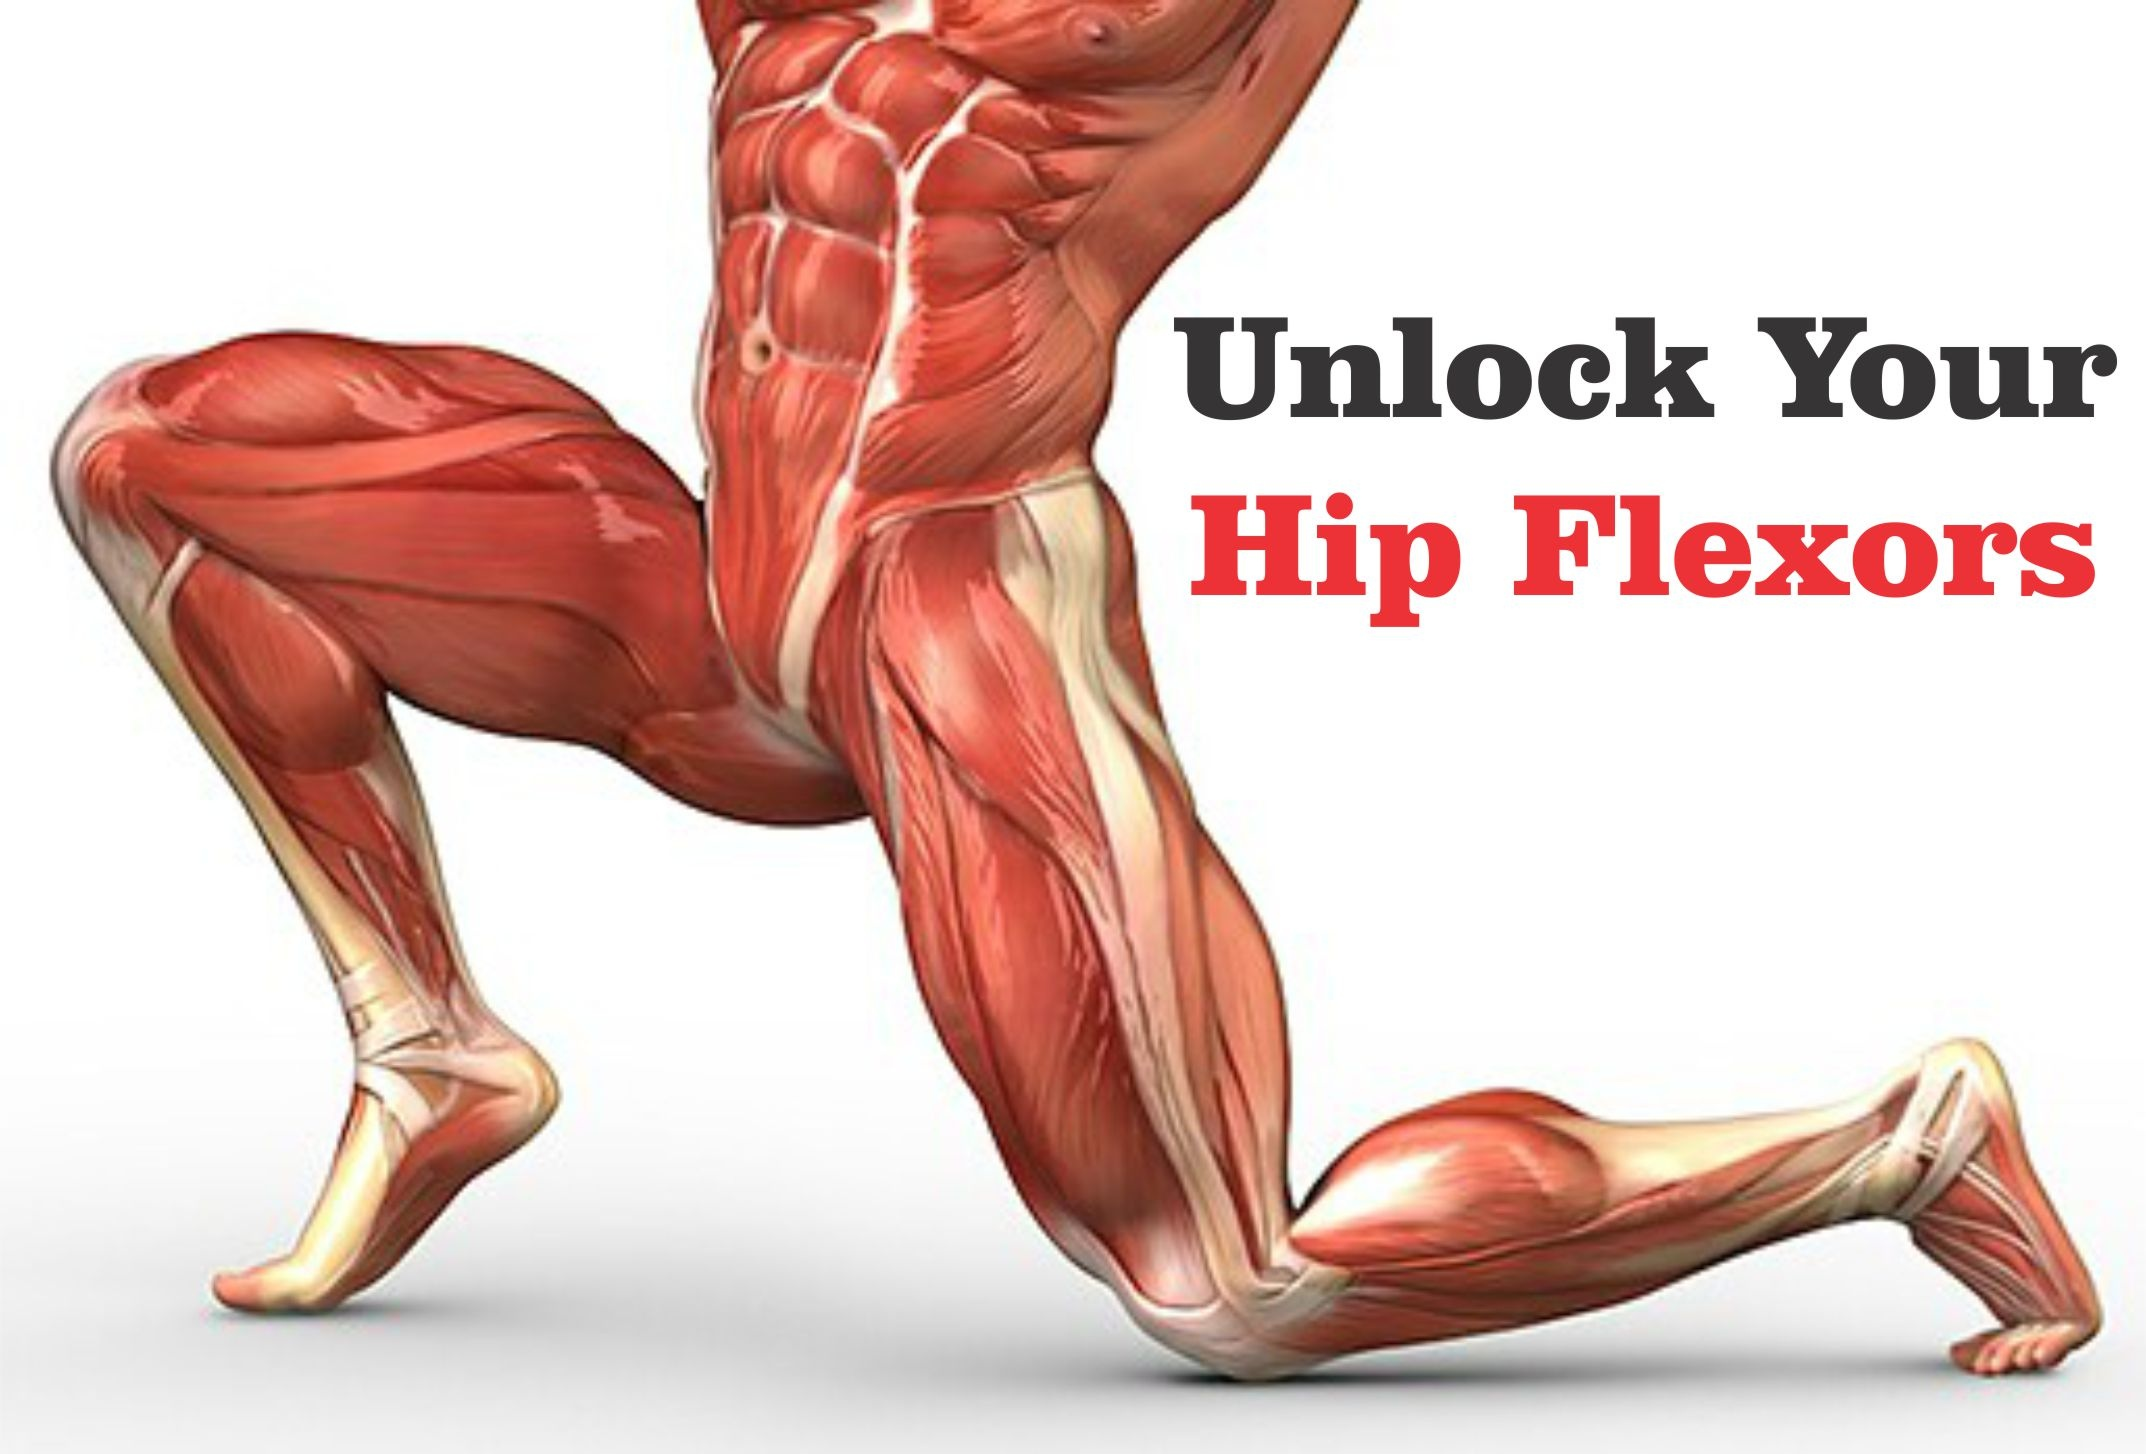 Stretching Hip Flexor Muscles